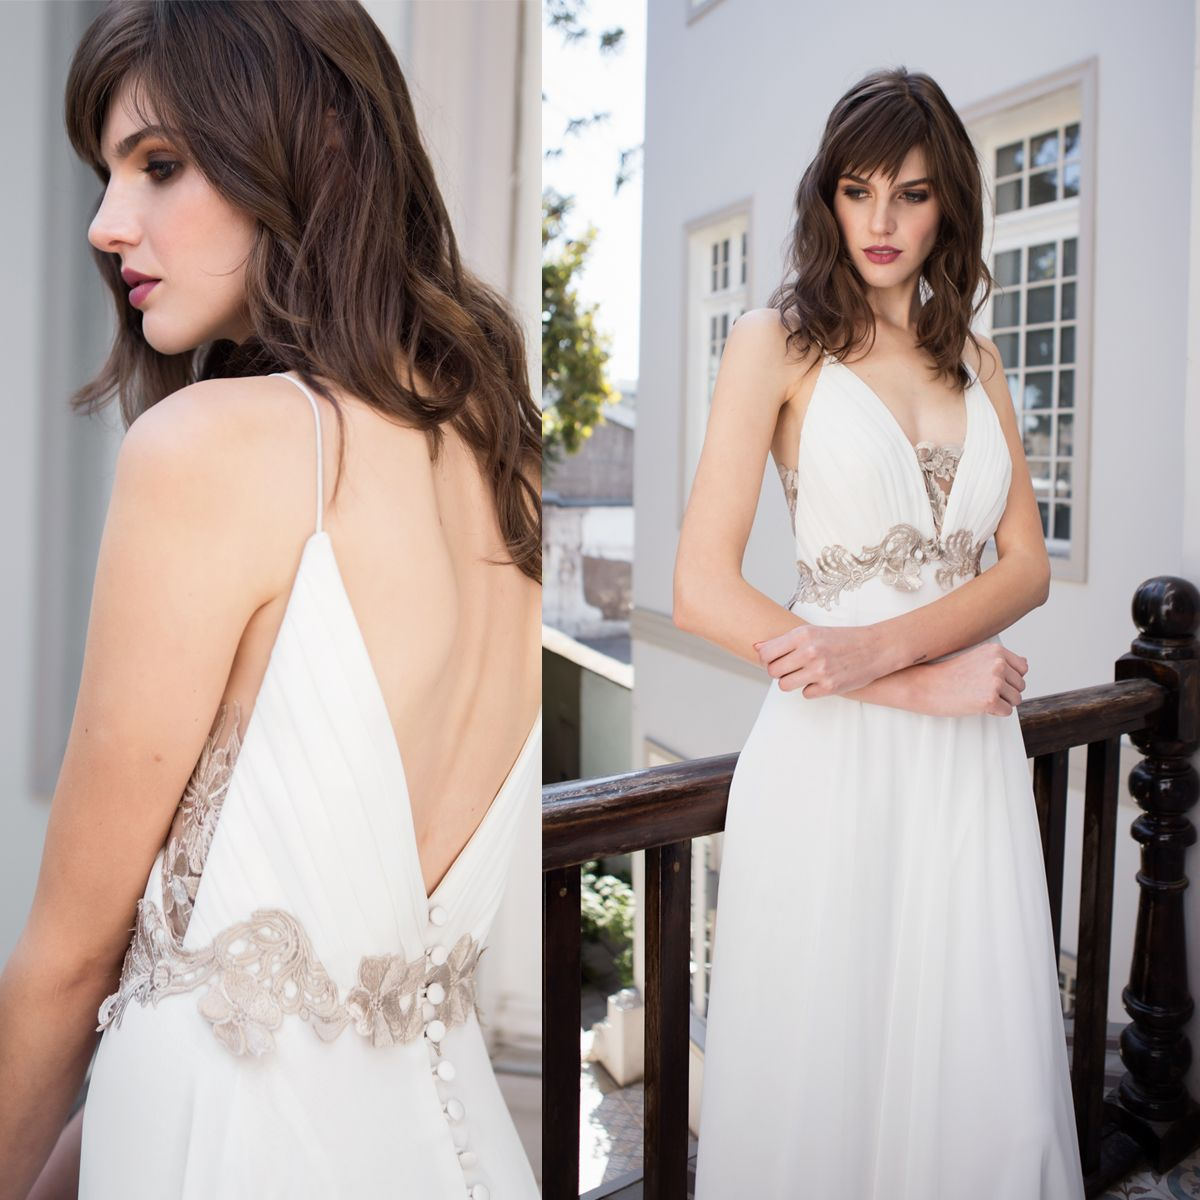 Vestido de Novia Griego · Grecian Wedding Dress #grecianweddingdresses